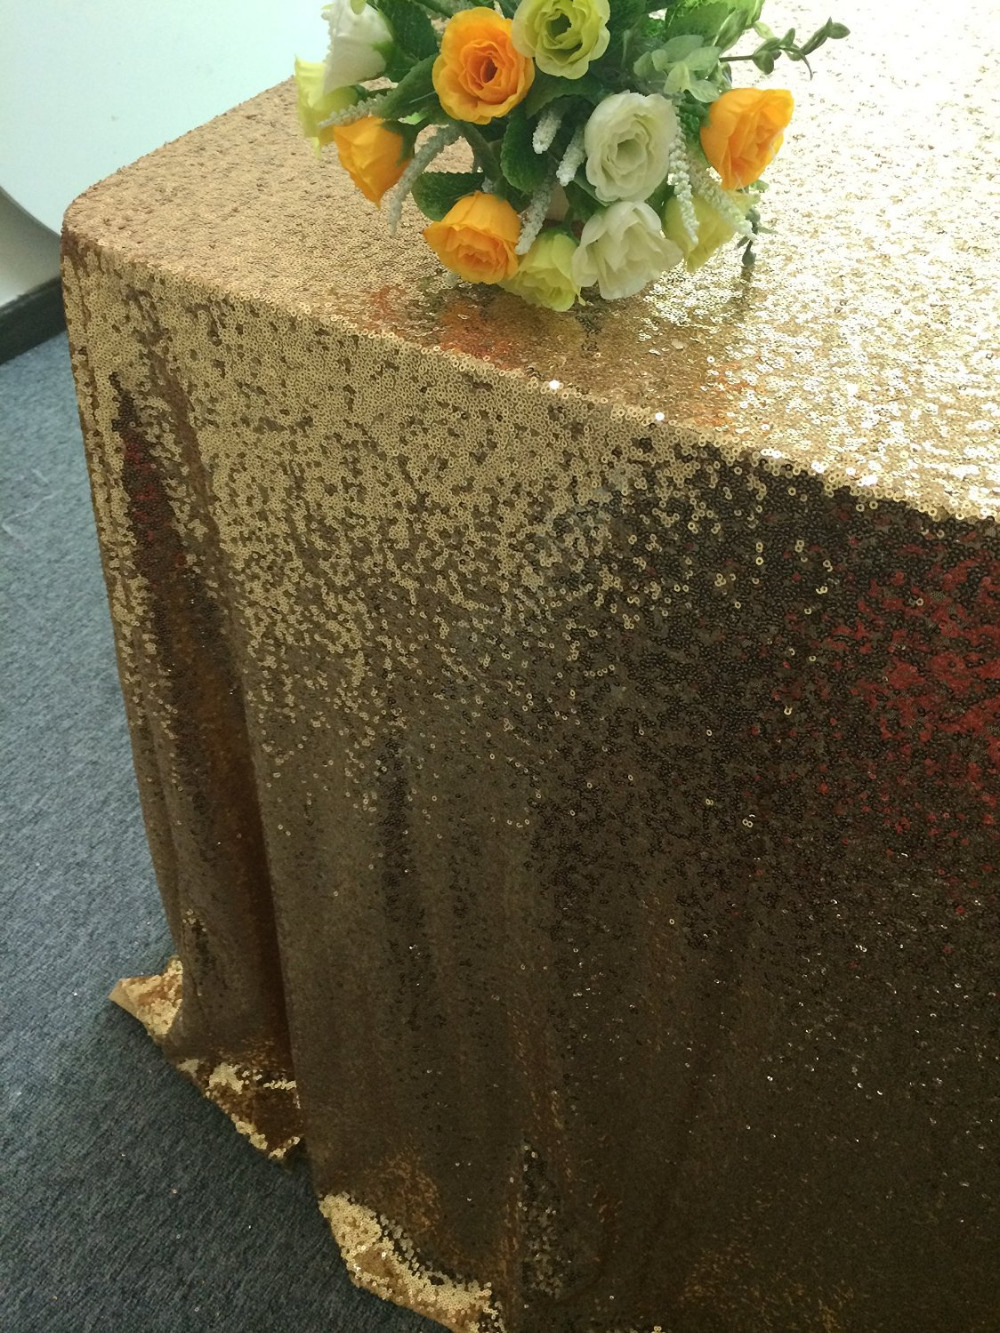 Gold Sequin Tablecloth- Glitz Sparkly Sequins-90x120in Rectangle- Choose Any Size - Event Home Decor Glam Sparkle Gatsby Party